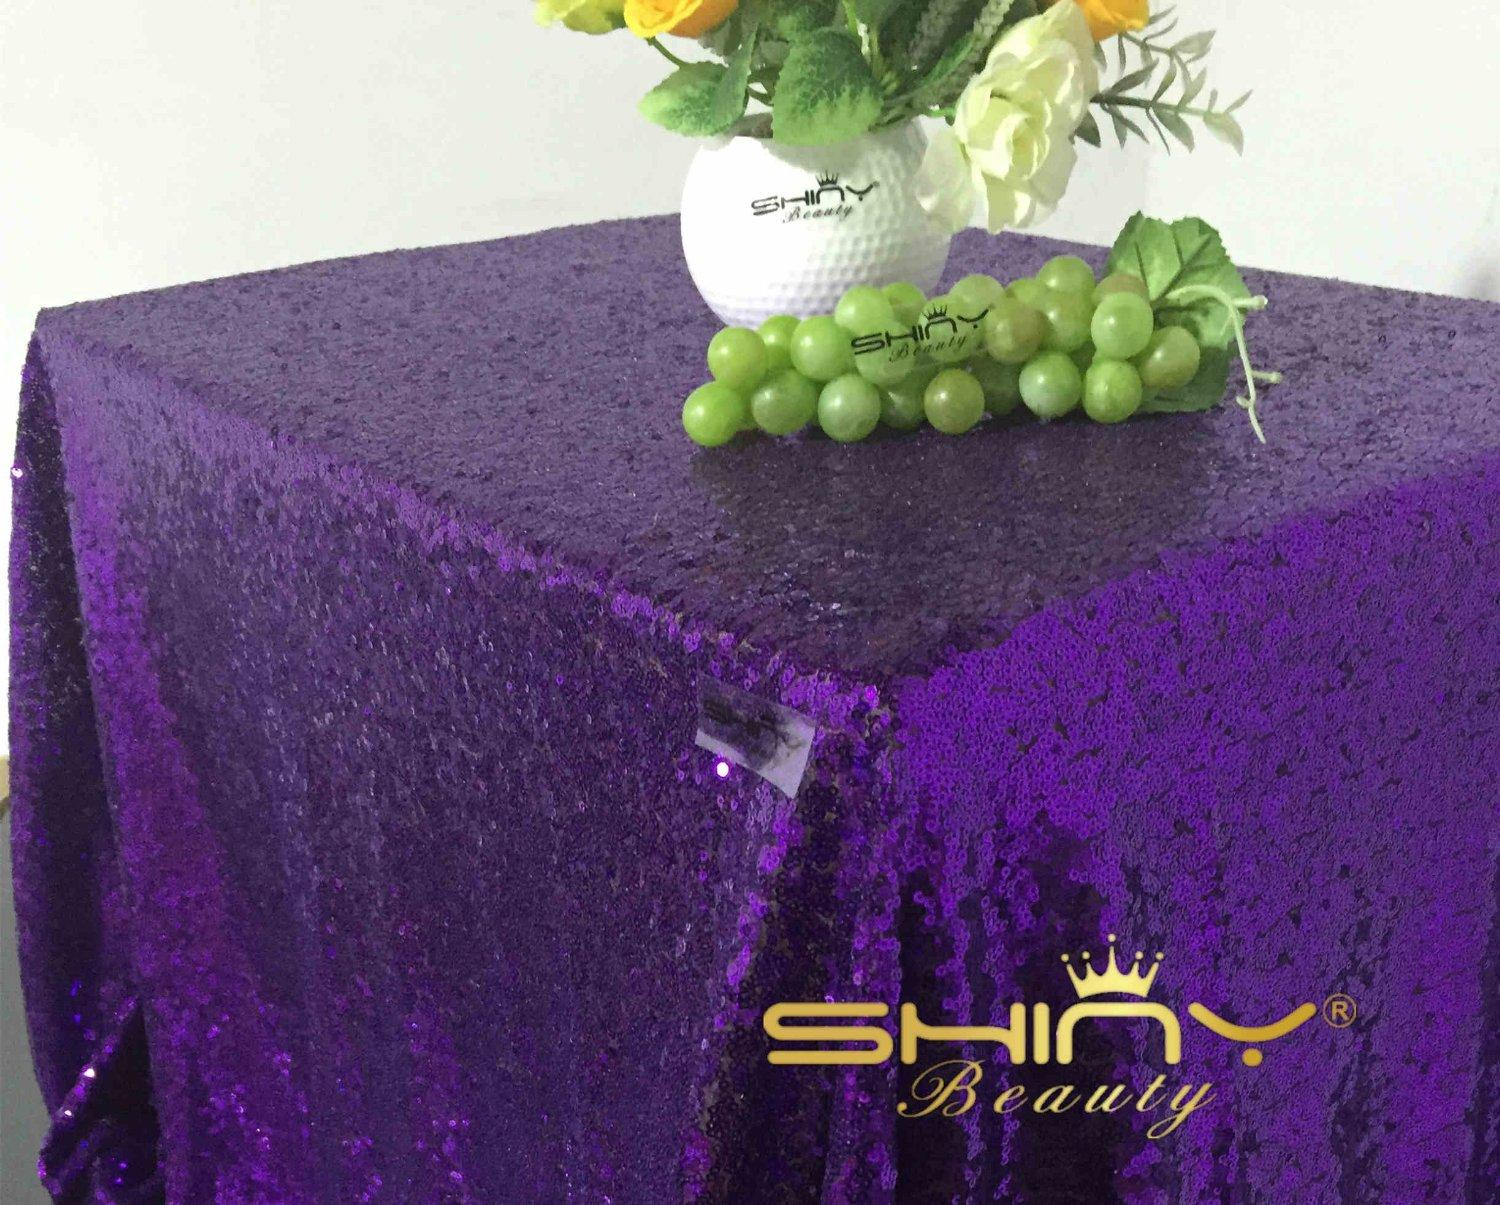 Square Purple Lace Tablecloth Or Table Cloth 90 Inch For Wedding Custom Made Decorations Cake Skirts